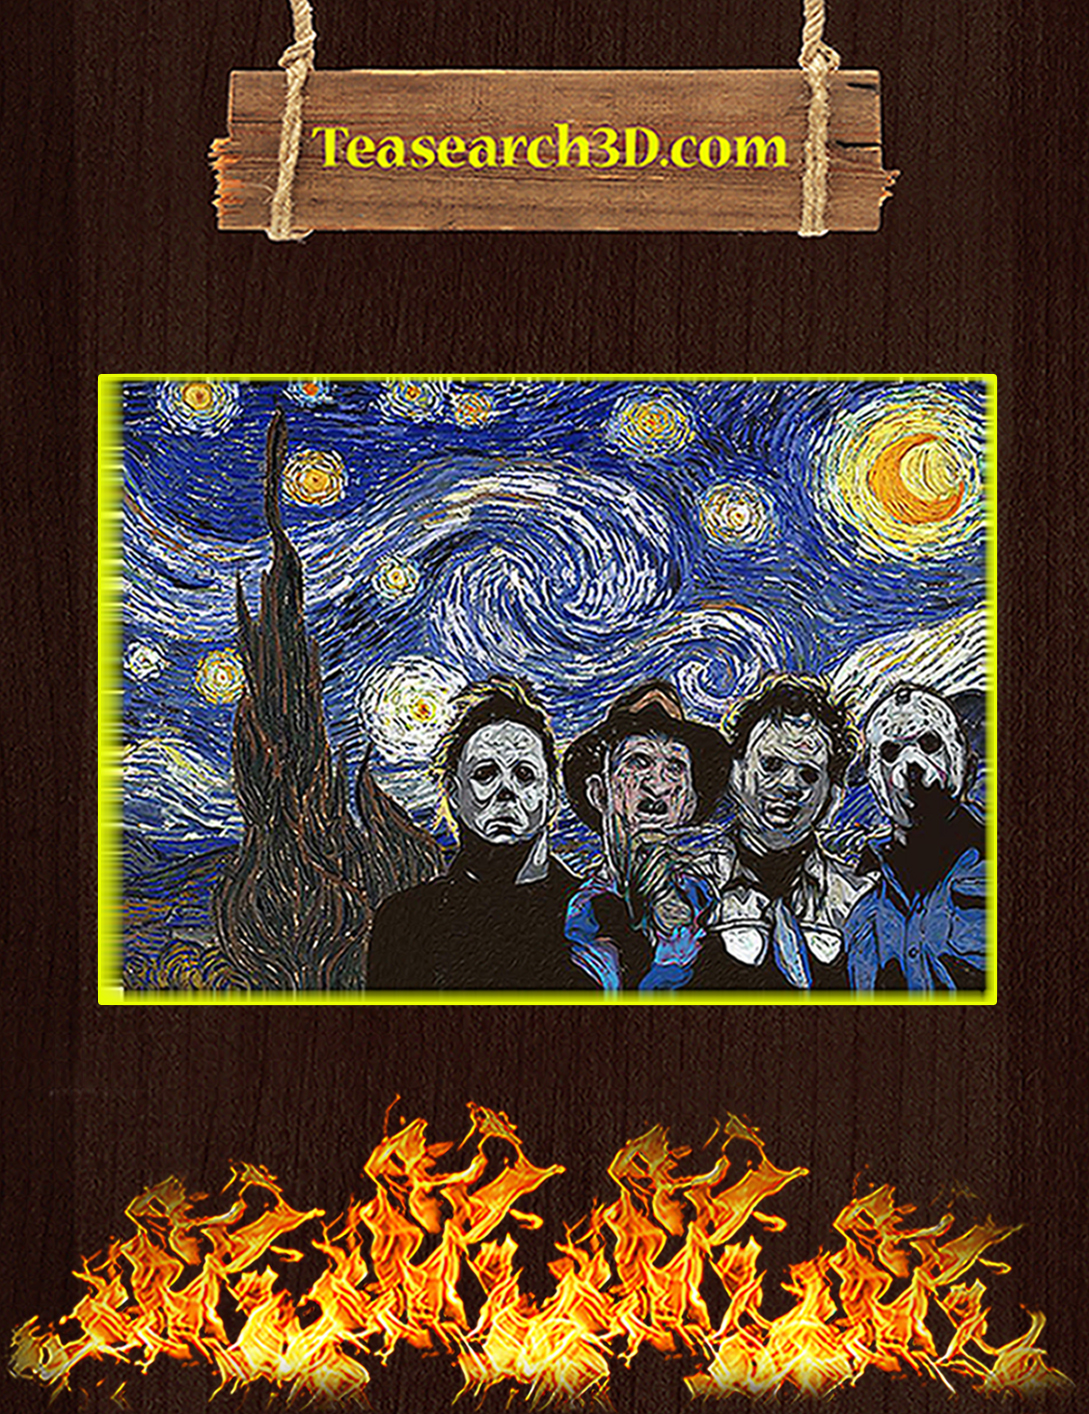 Horror movies killer starry night van gogh poster A2